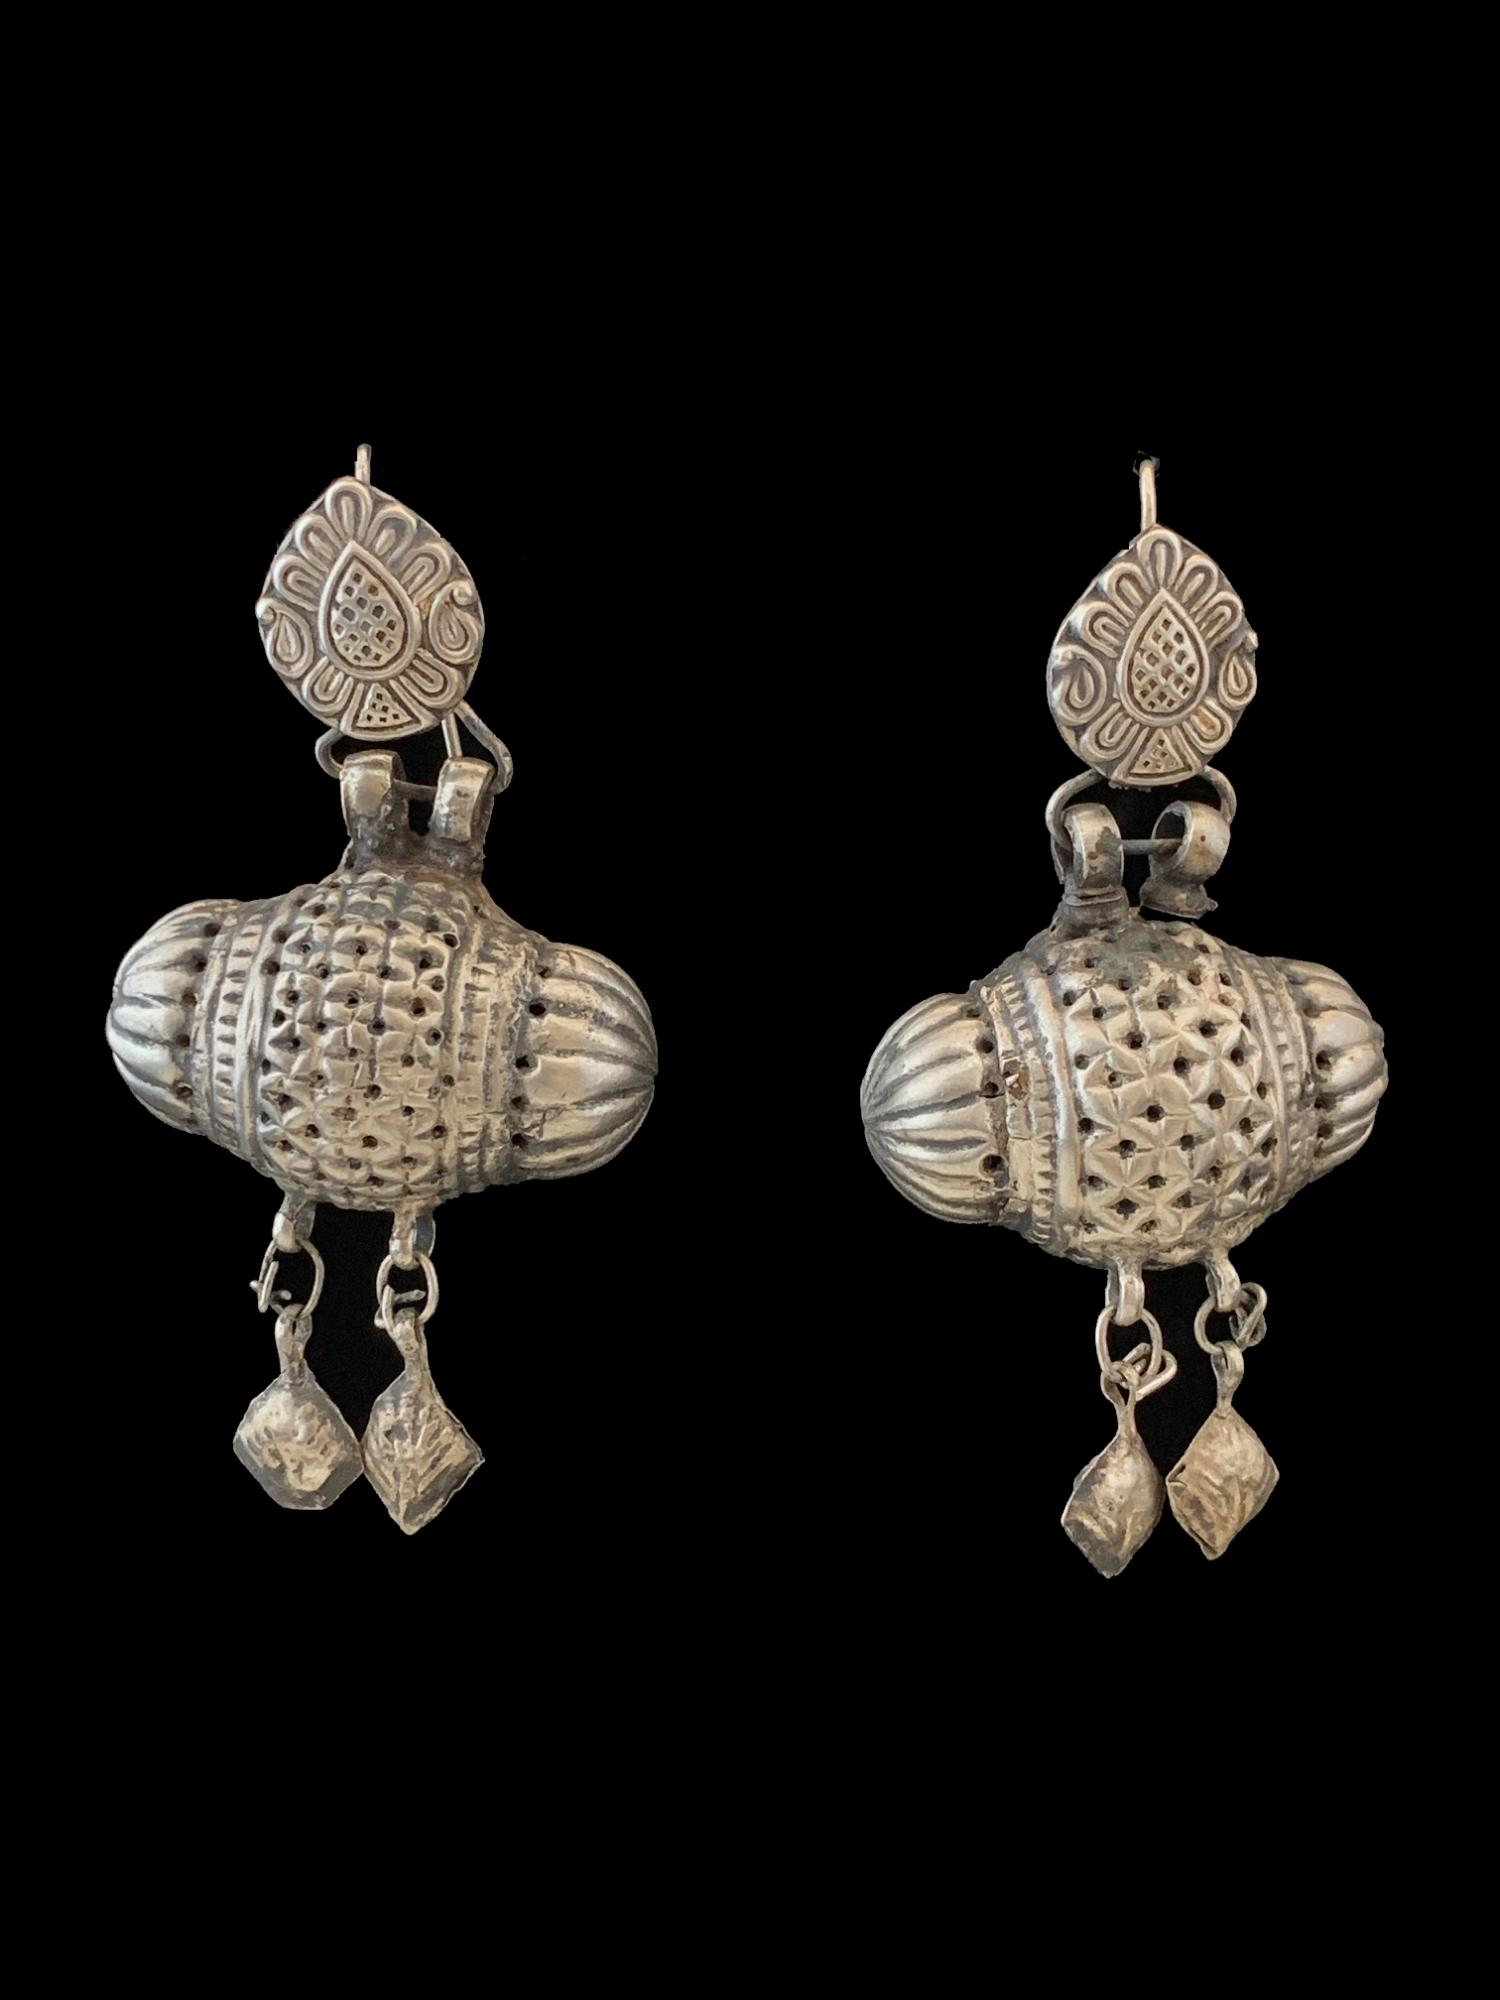 Hollow Lightweight Earrings from India